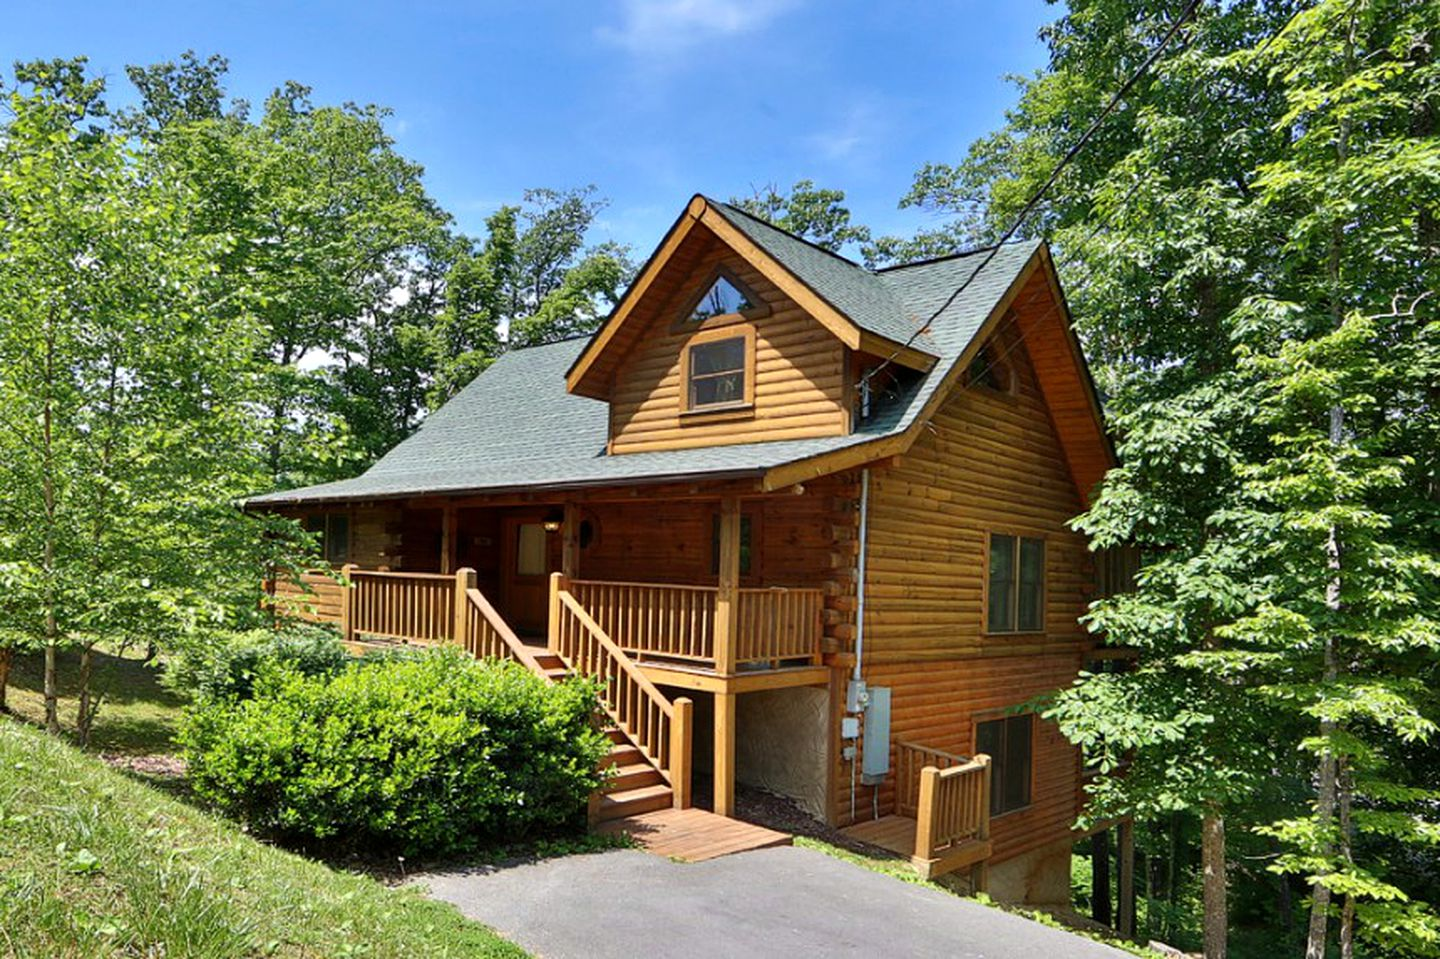 Discover the best pet friendly cabins Sevierville TN has to offer with this luxury log cabin rental